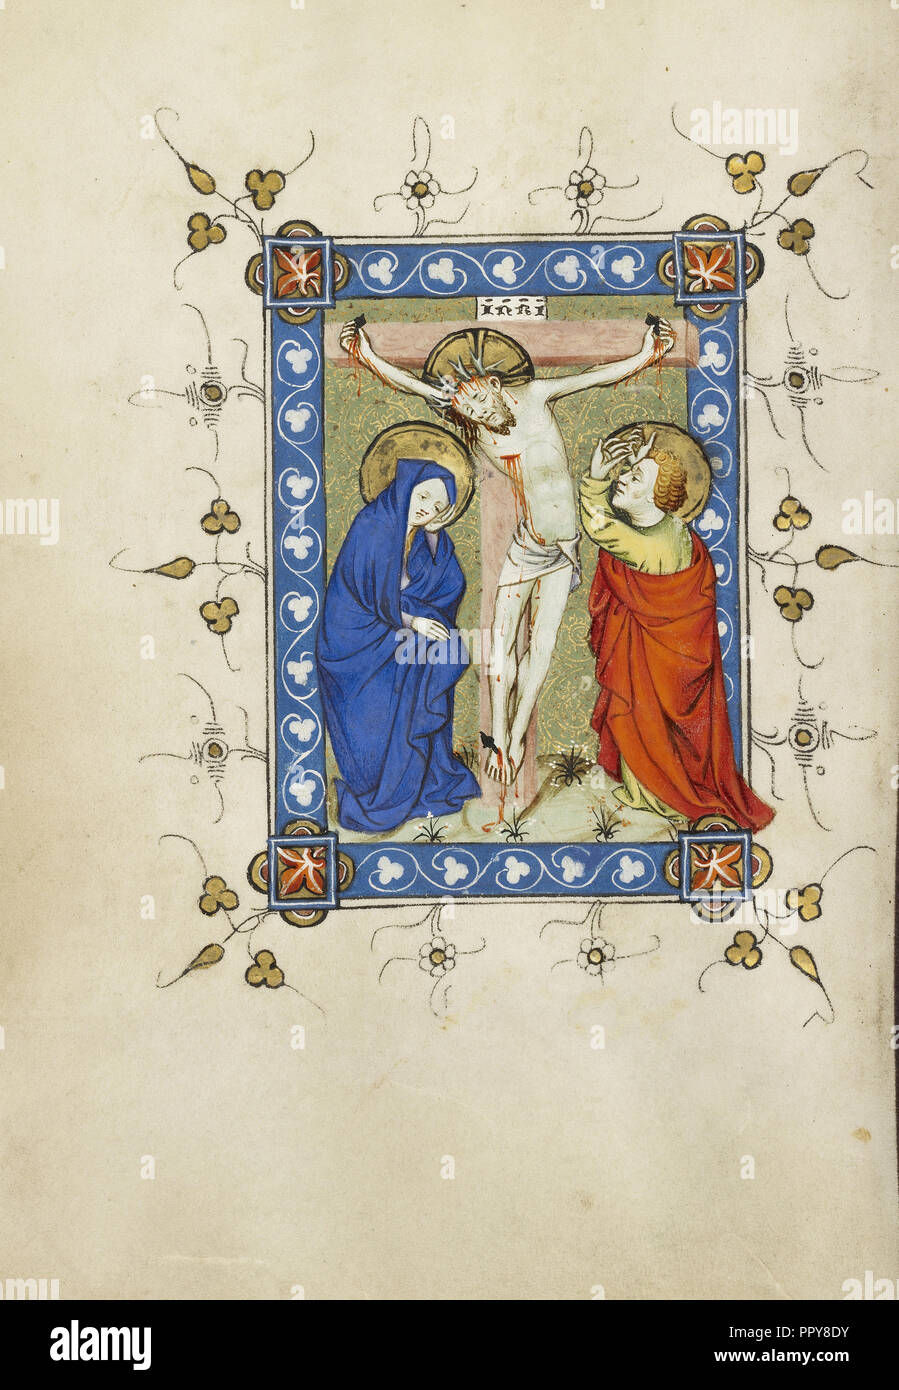 The Crucifixion; Masters of Dirc van Delf, Dutch, active about 1400 - about 1410, Utrecht, probably, Netherlands; about 1405 - Stock Image